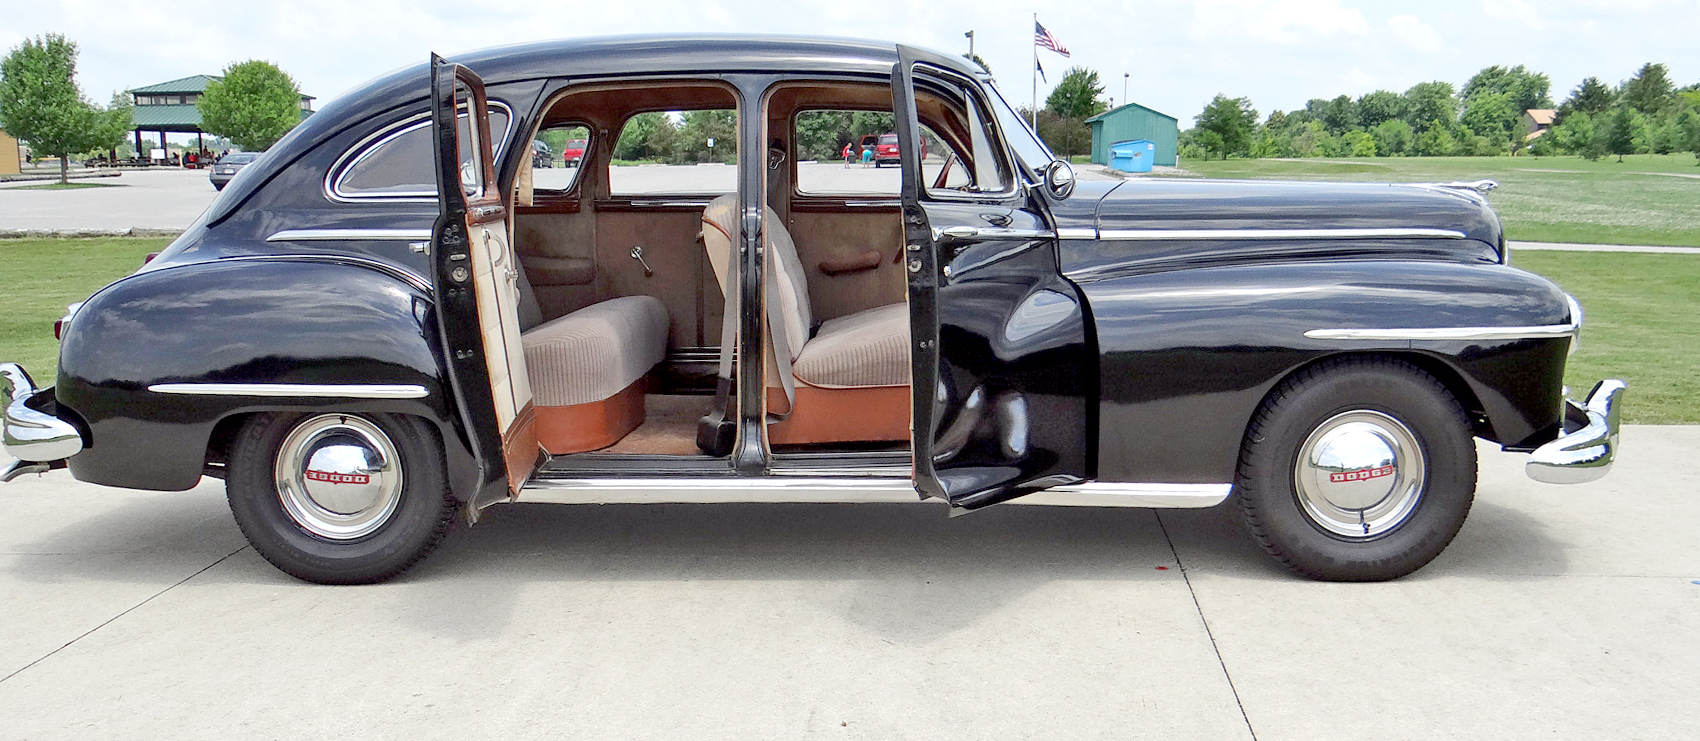 File:1946 Dodge D24C 4-Door Sedan Suicide Doors 259.jpg & File:1946 Dodge D24C 4-Door Sedan Suicide Doors 259.jpg ... Pezcame.Com